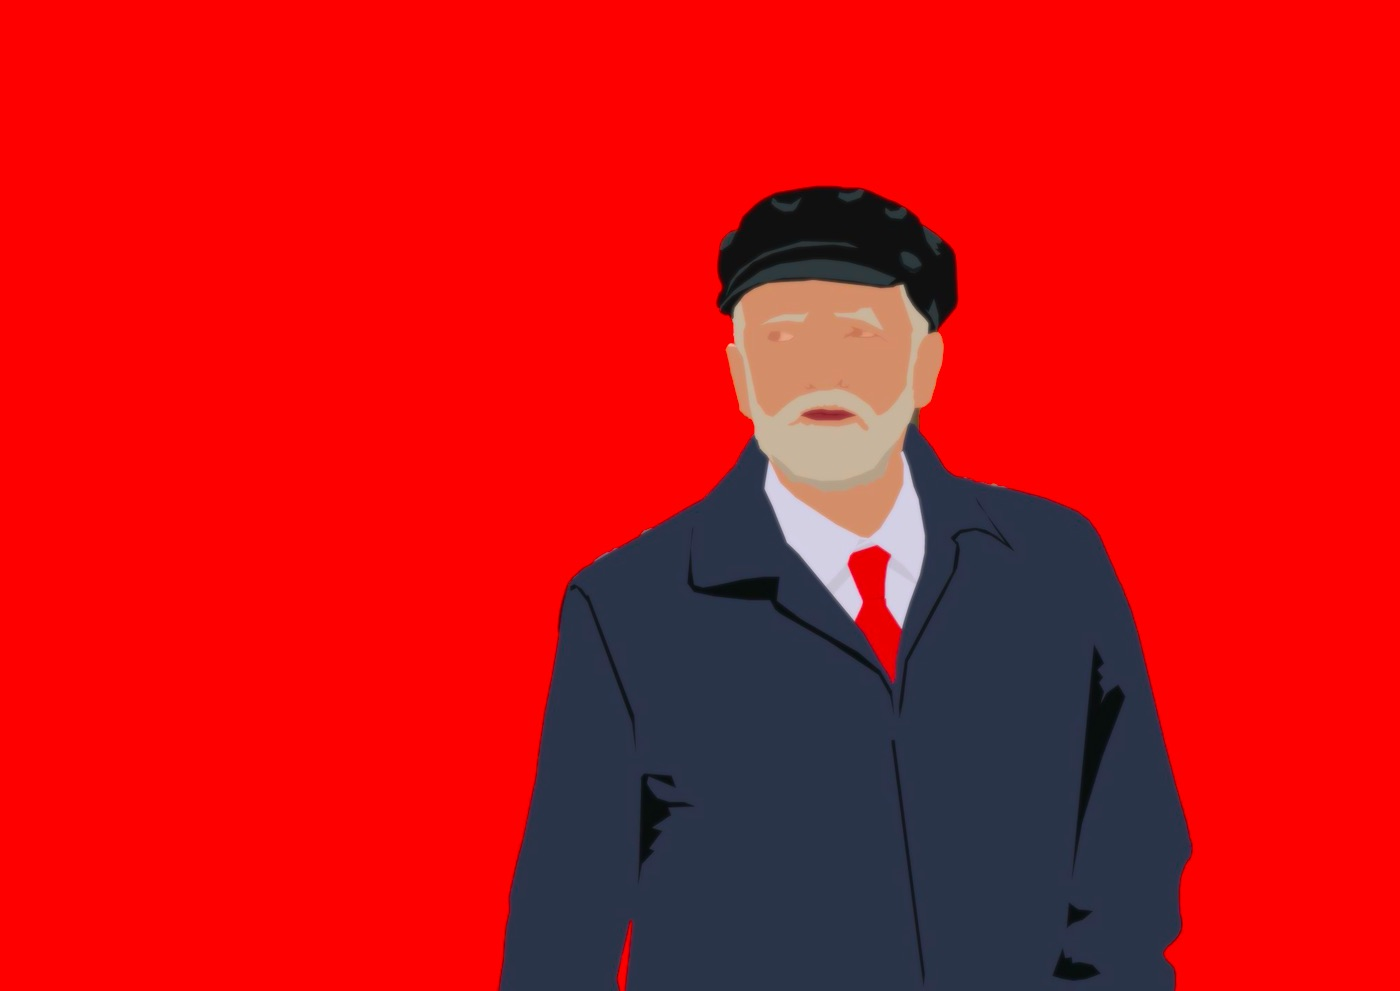 Jeremy Corbyn's leadership has allowed antisemitism to fester and come to the surface just a year into his leadership. Imagine what he will do by the end of it.|Photo: Awdinle Online